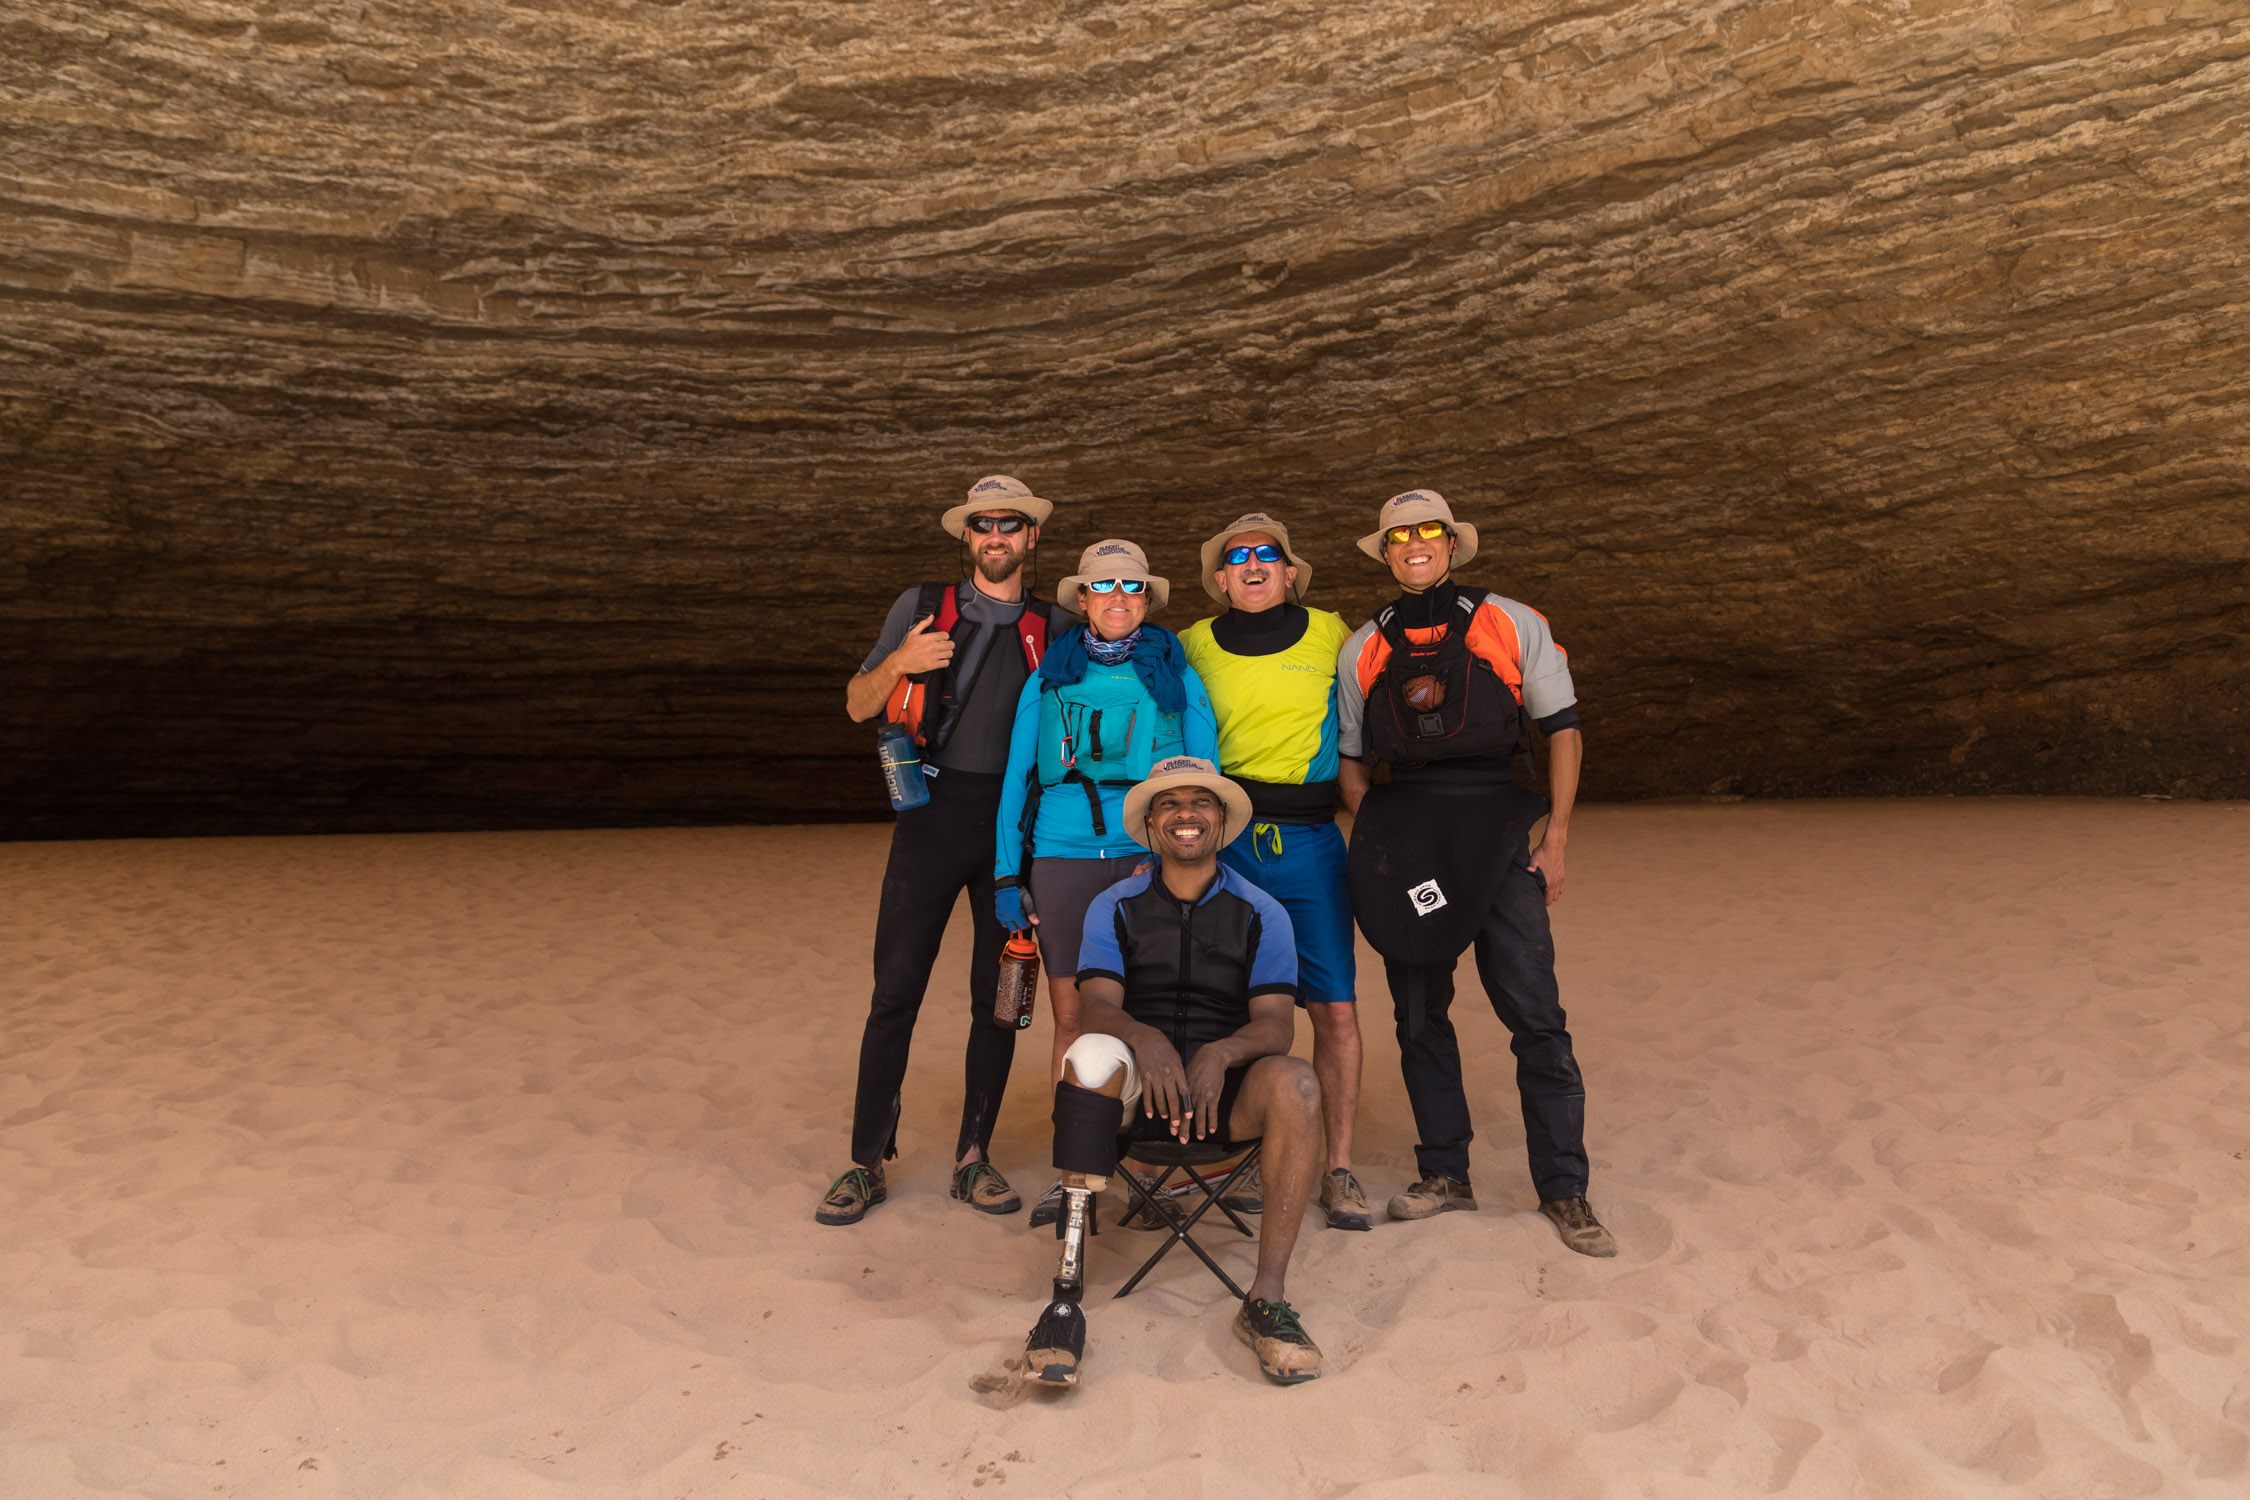 Group photo of all the disabled veteran kayakers in Redwall Cavern.